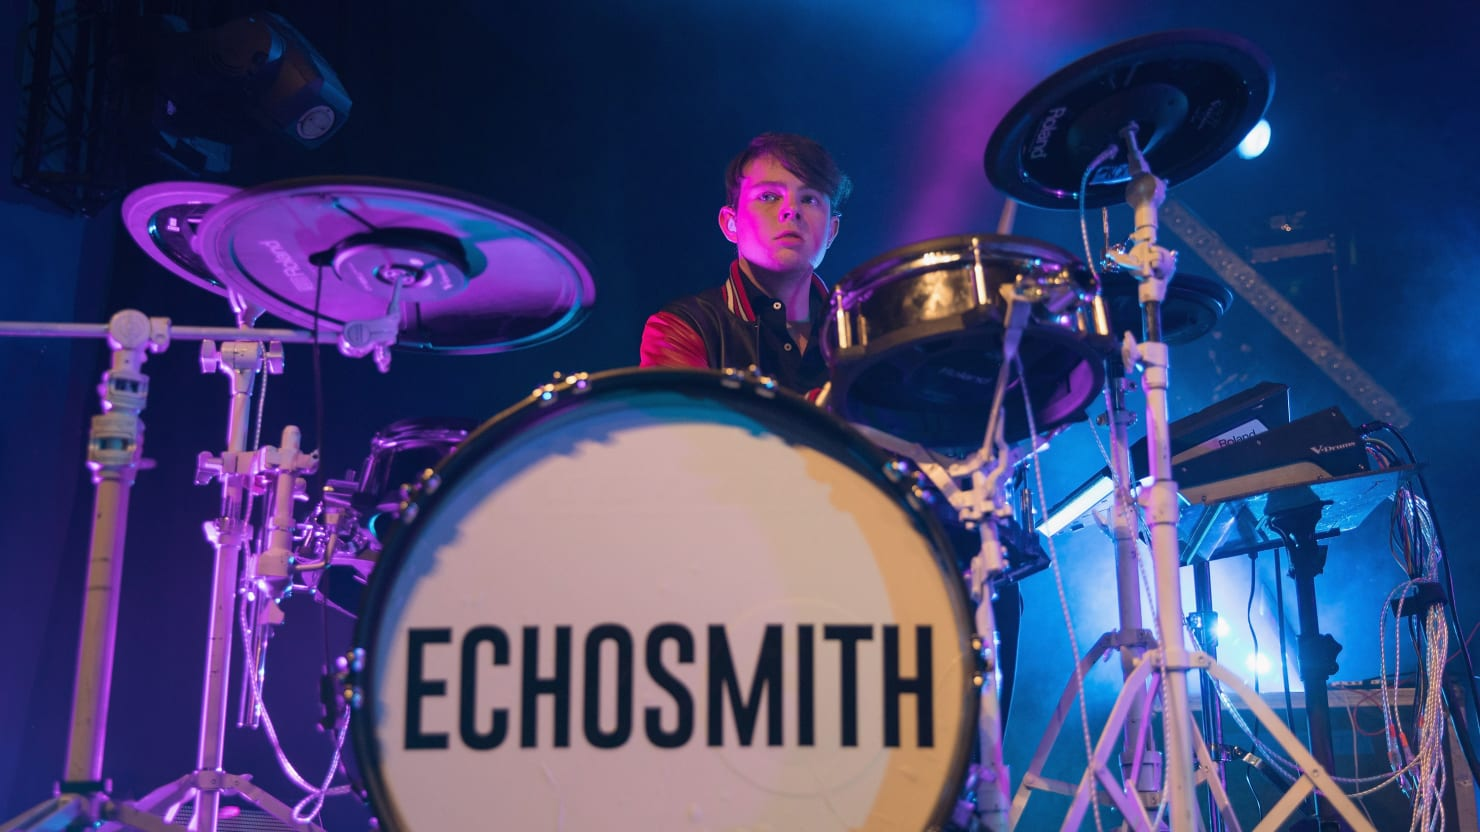 Echosmith Drummer Graham Sierota's Predatory Messages to Travis Barker of Blink-182's 13-Year-Old Daughter